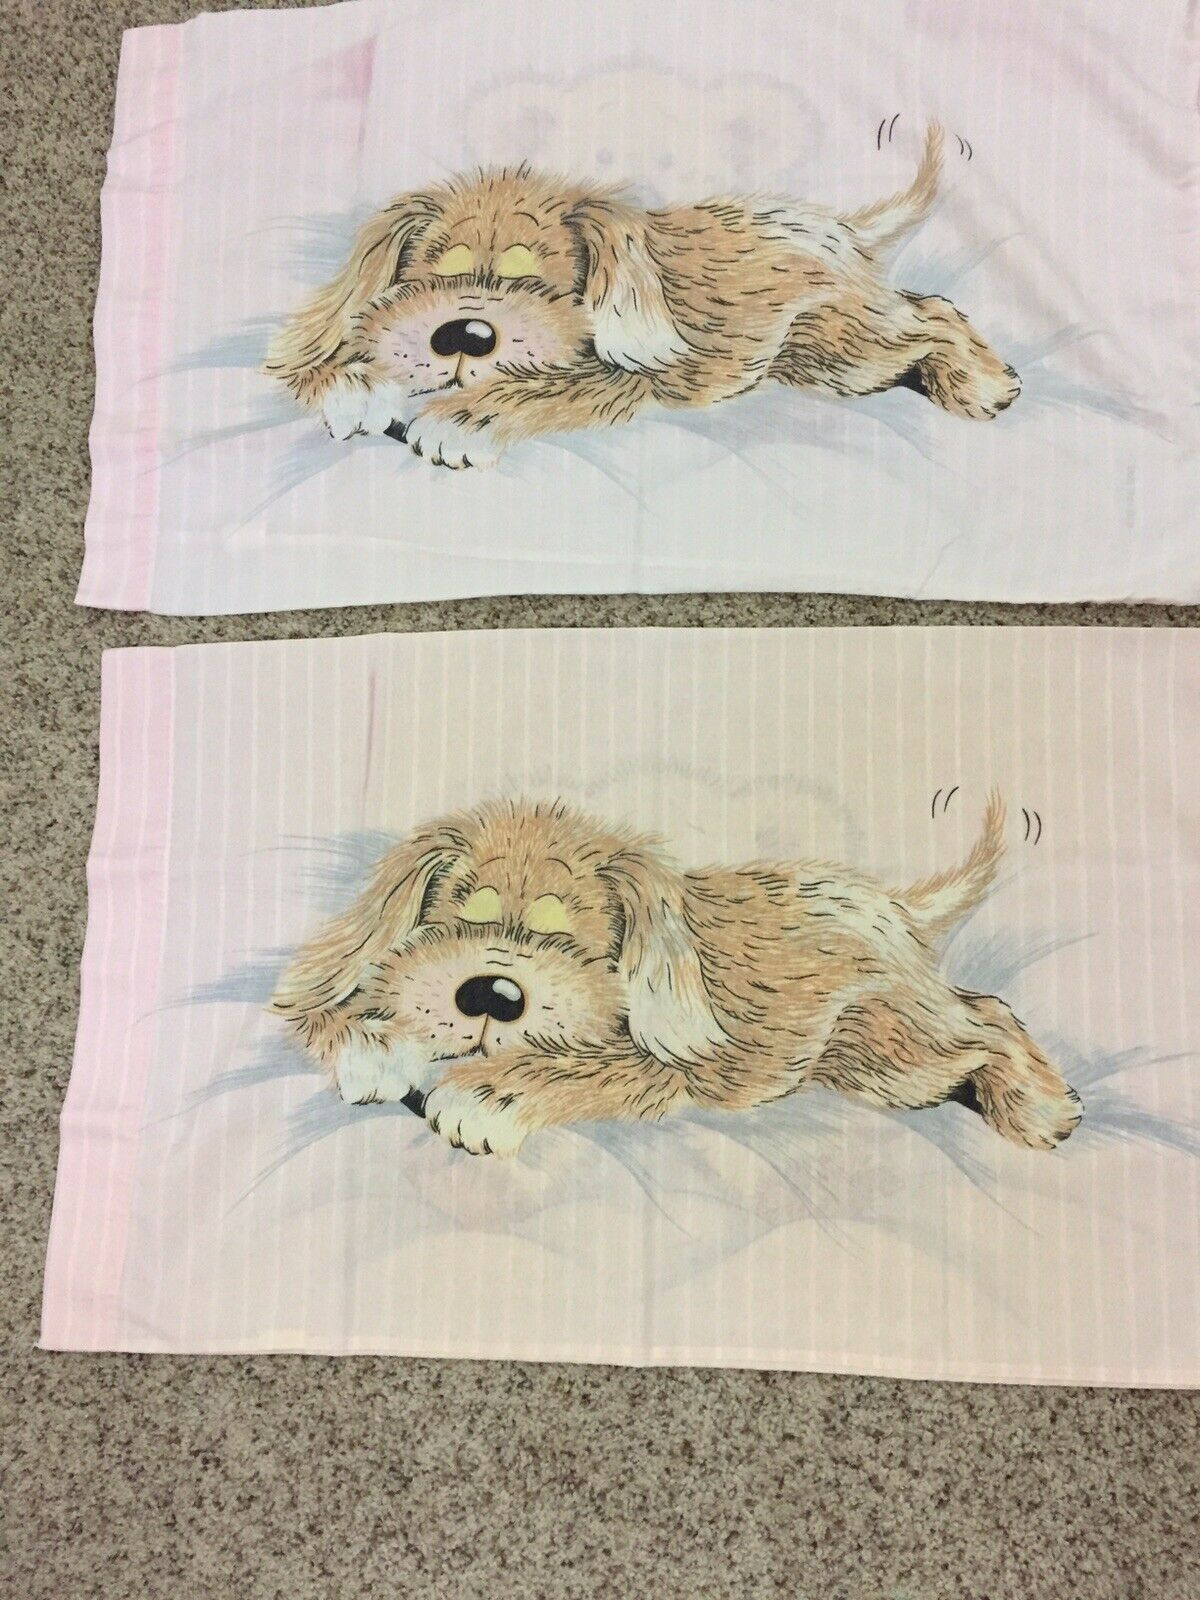 VTG Sue Hall Set (2) Pink Pillowcases 1990 Snatch The Dog Sleeping Double Sided